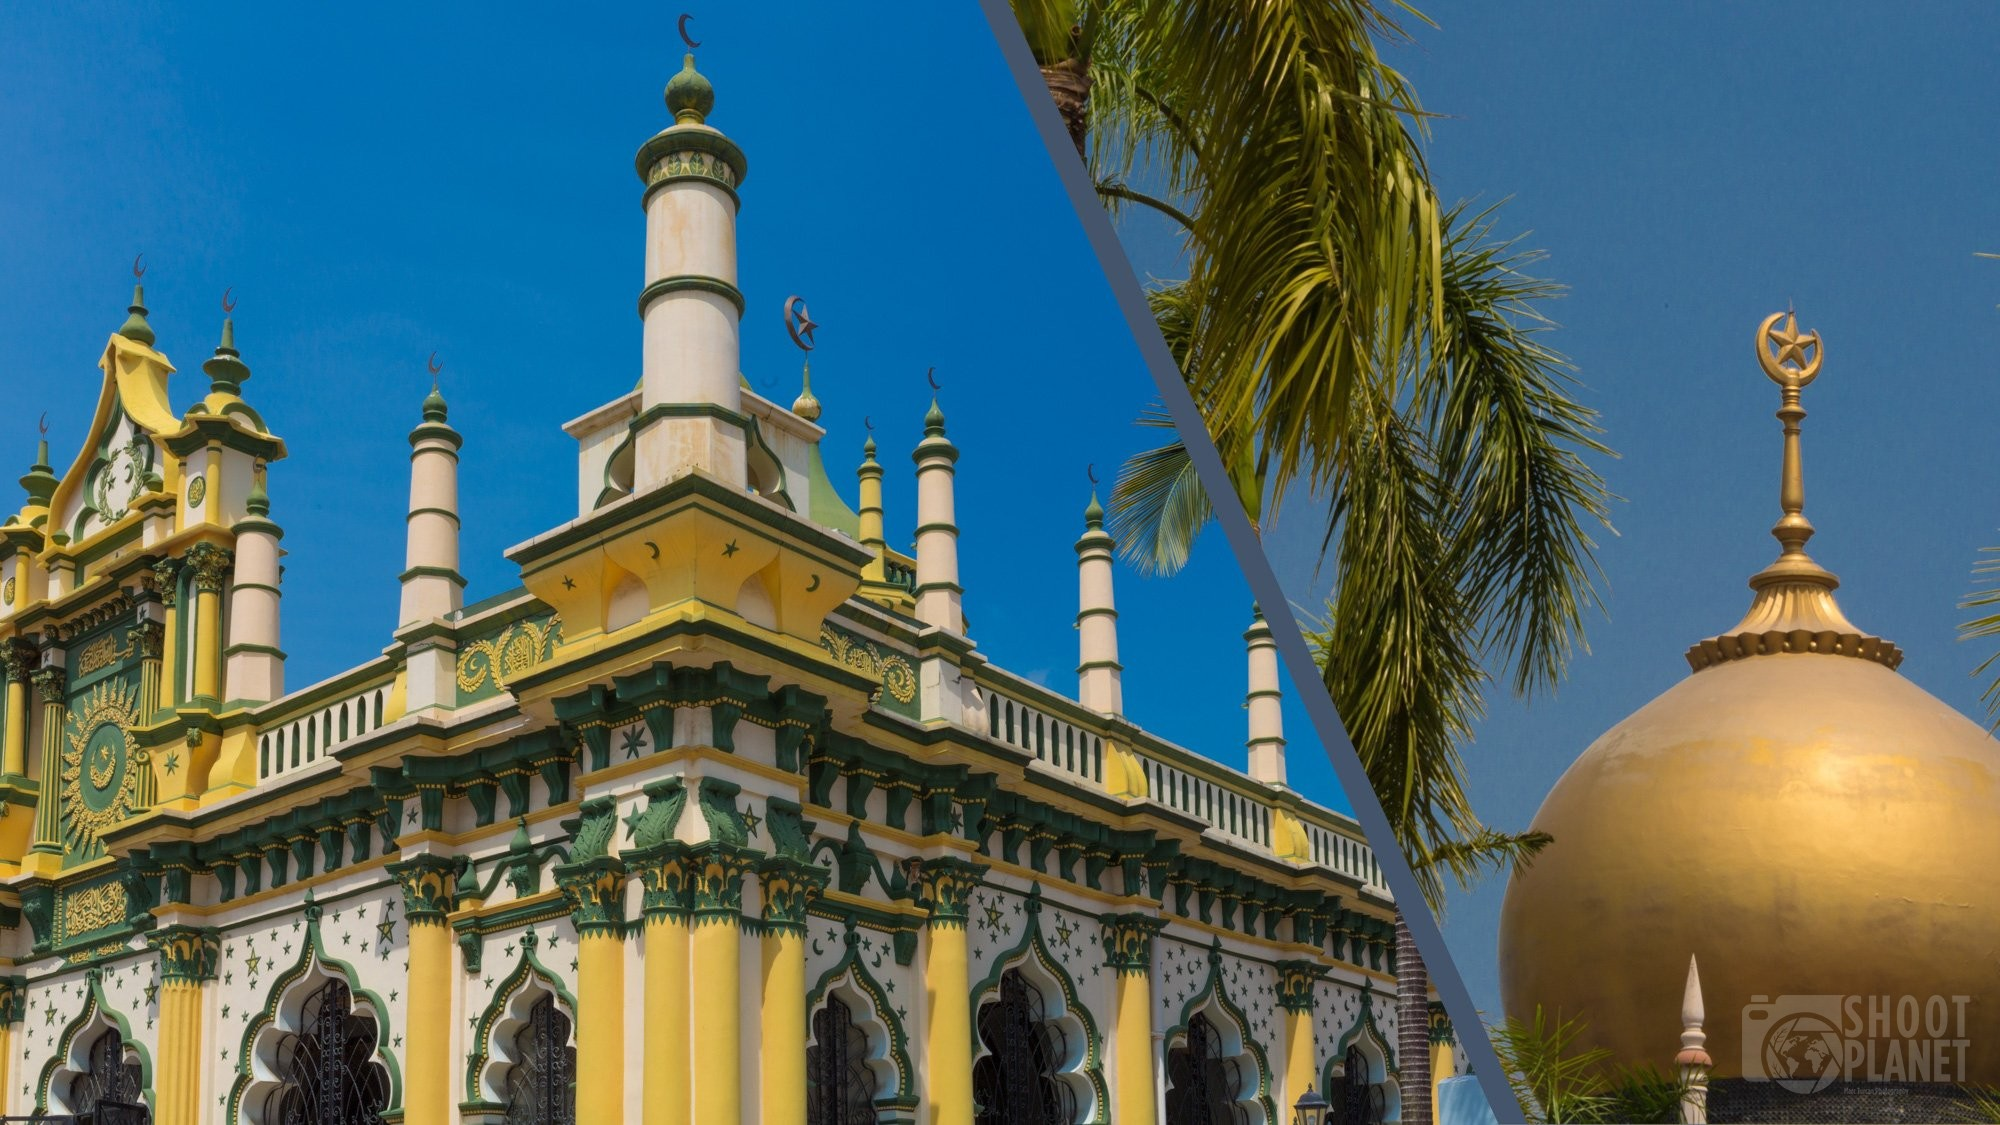 Arab street monuments in singapore